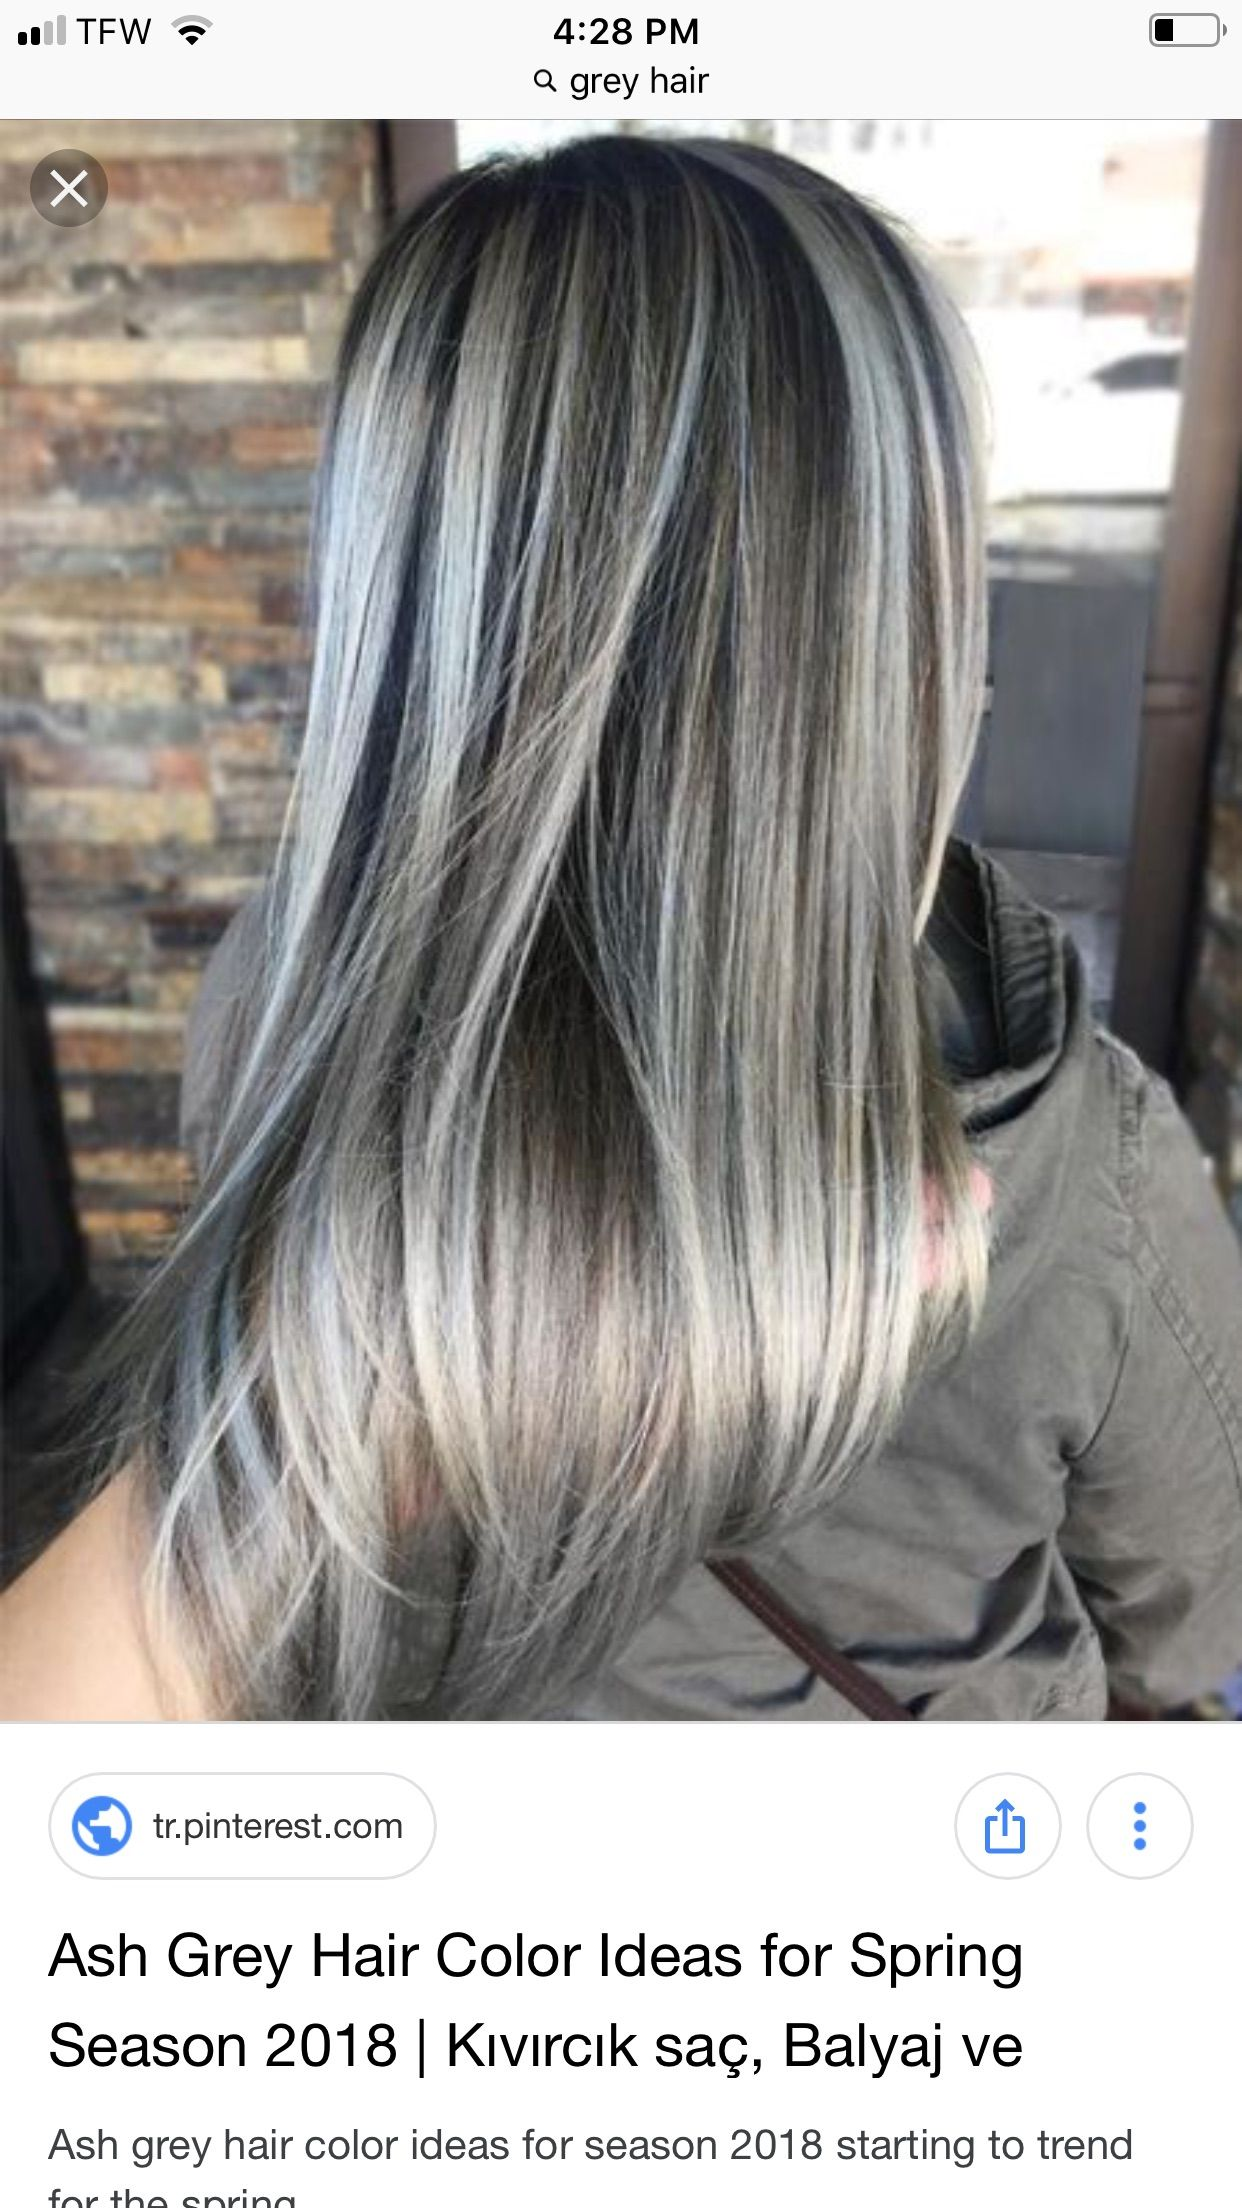 Pin By Jaye Oh On Mane Event In 2019 Pinterest Hair Ash Blonde